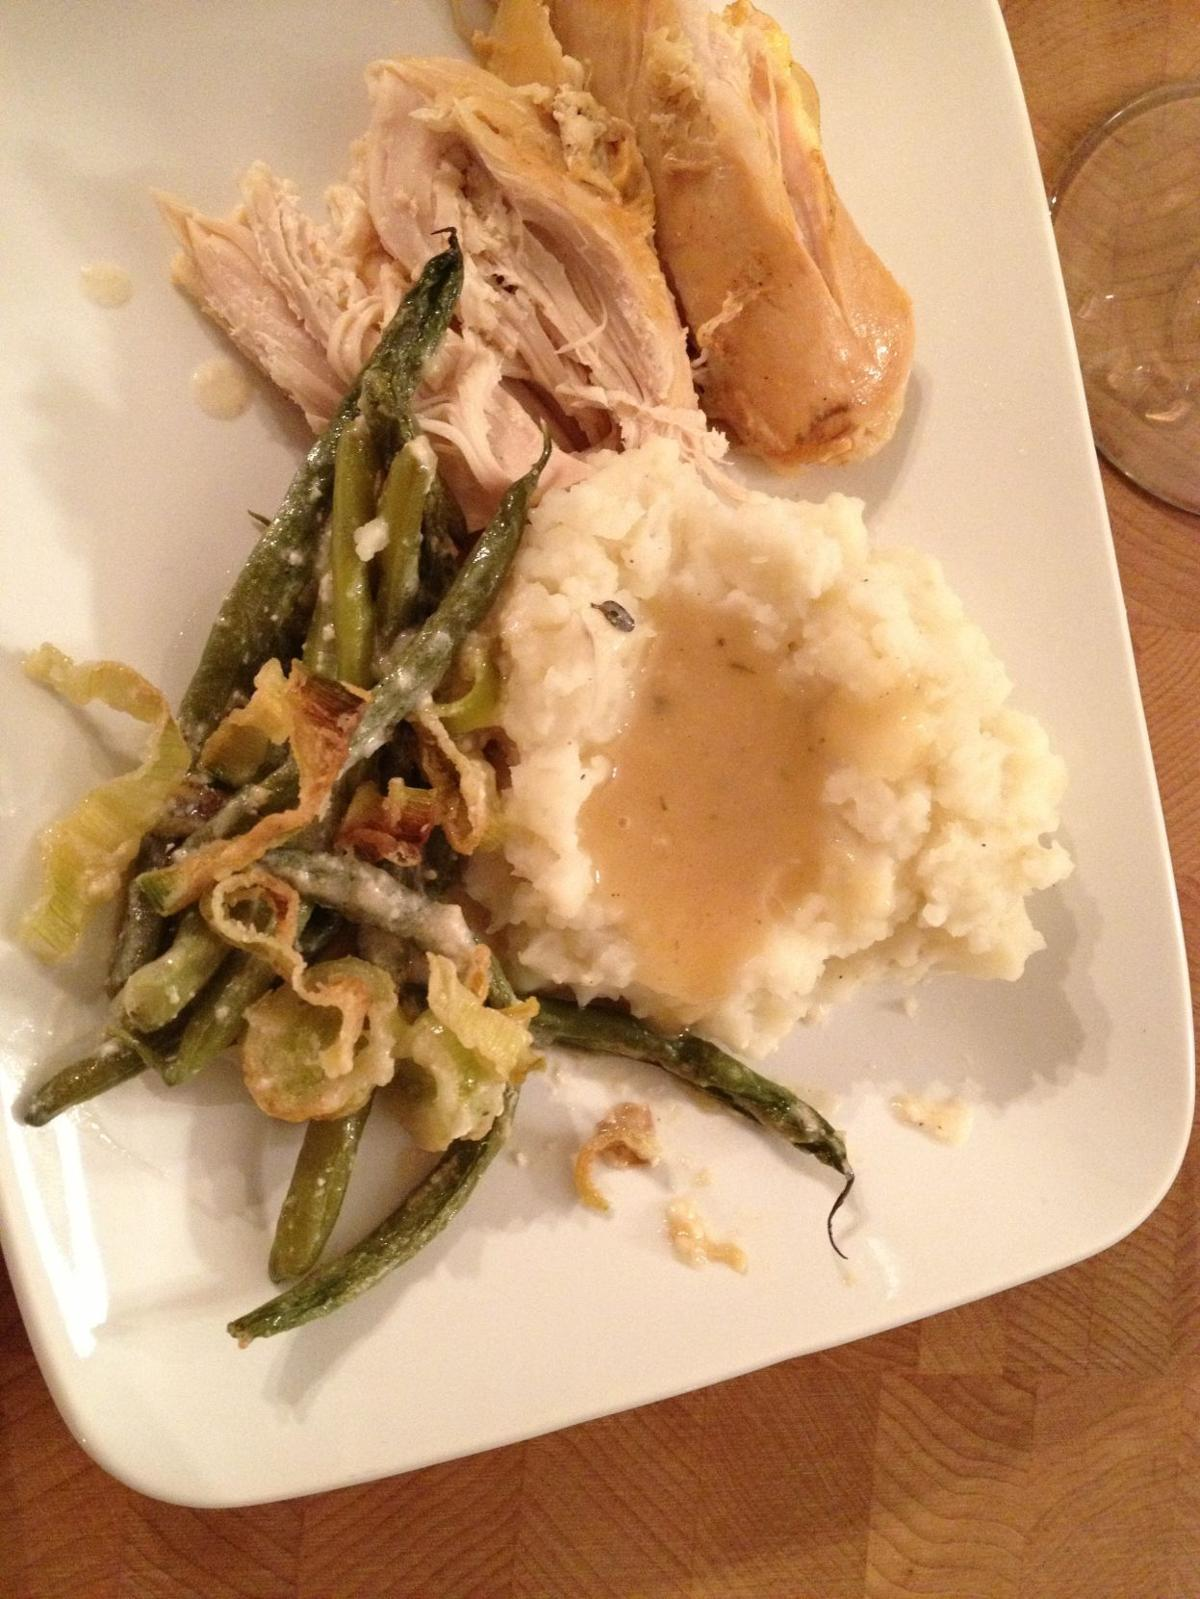 Heather Tallman's slow cooker turkey breast & candied sweet potatoes and apples